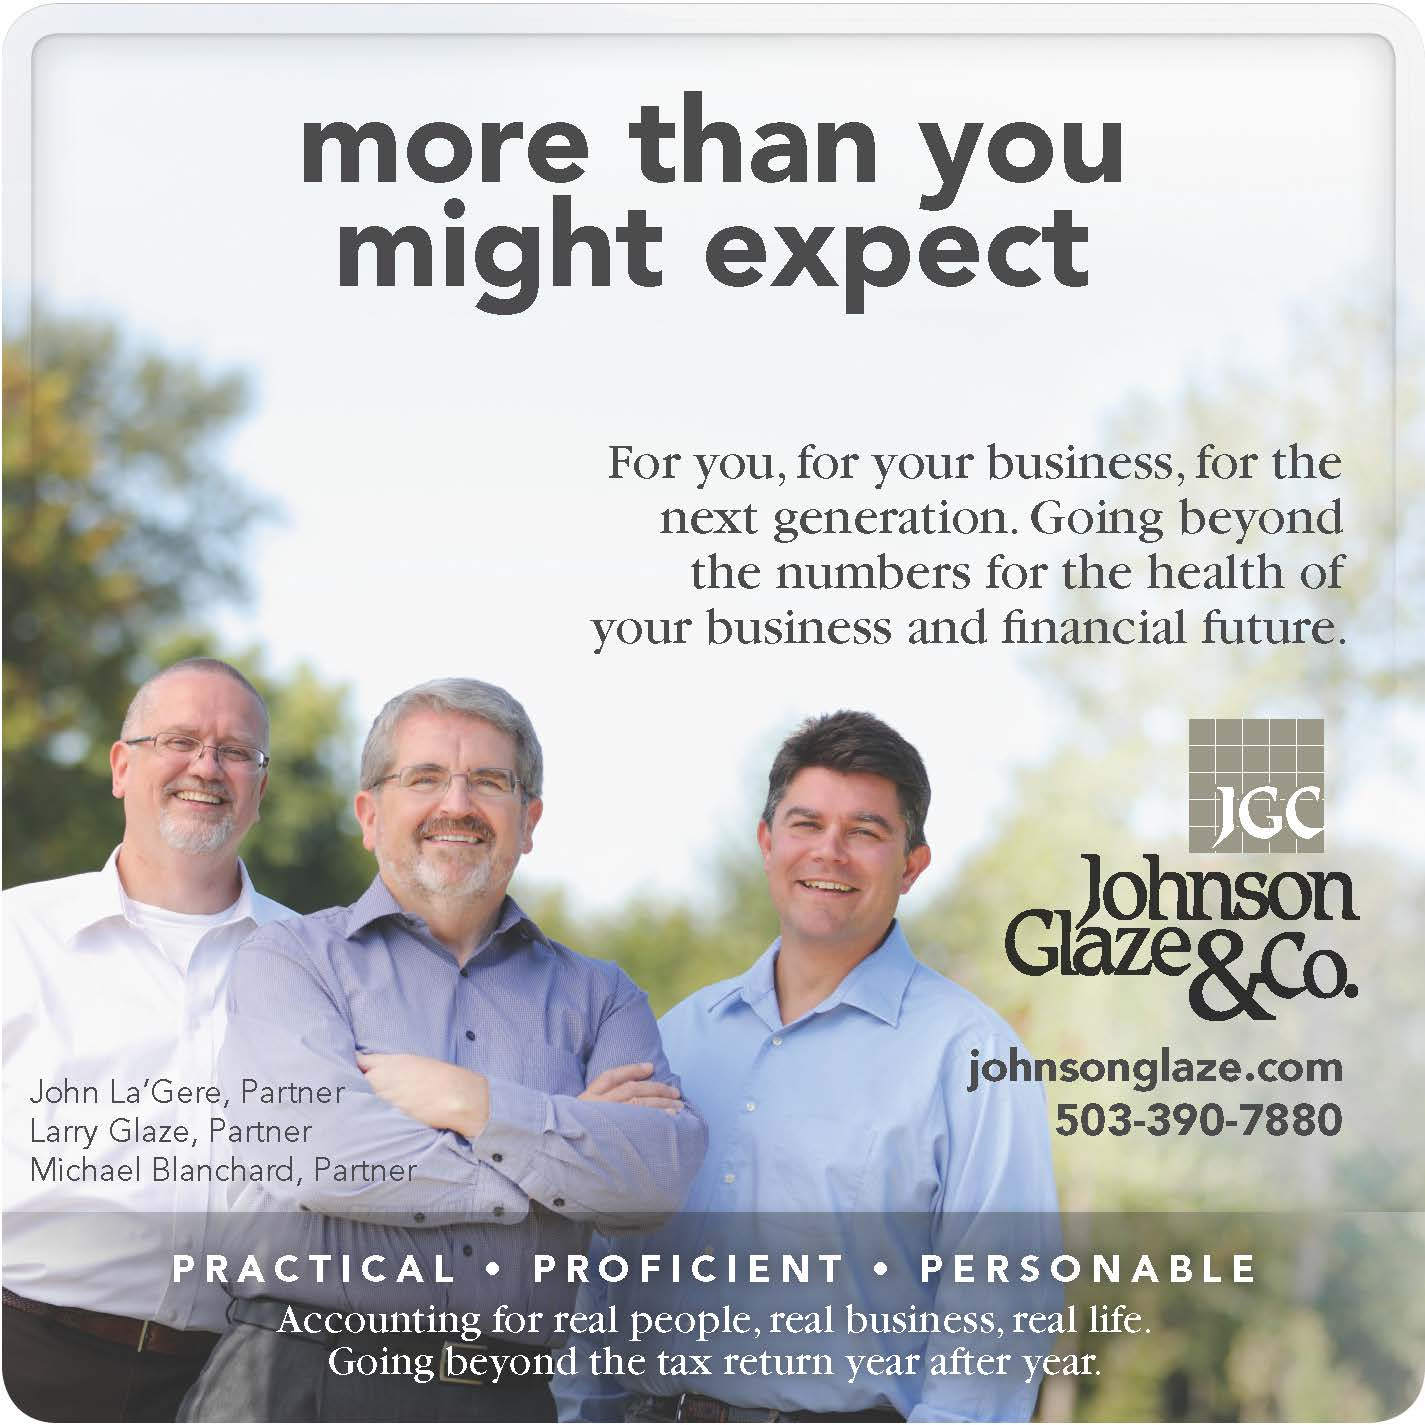 CPA marketing brings in business